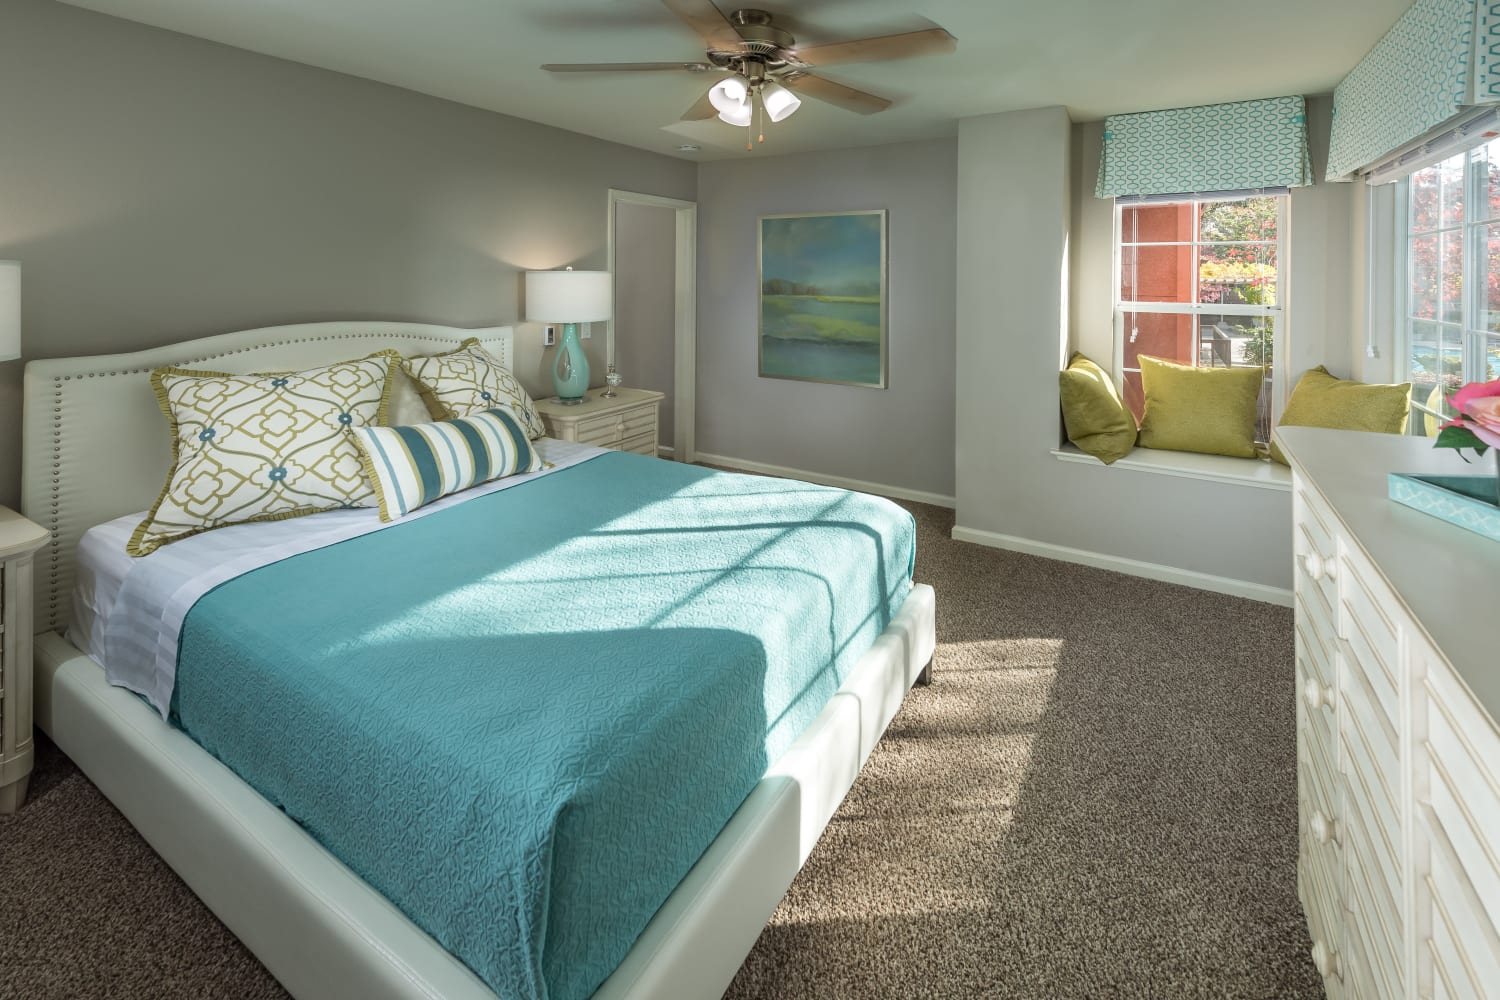 Enjoy a sunlit bedroom at Bella Vista Apartments in Santa Clara, California